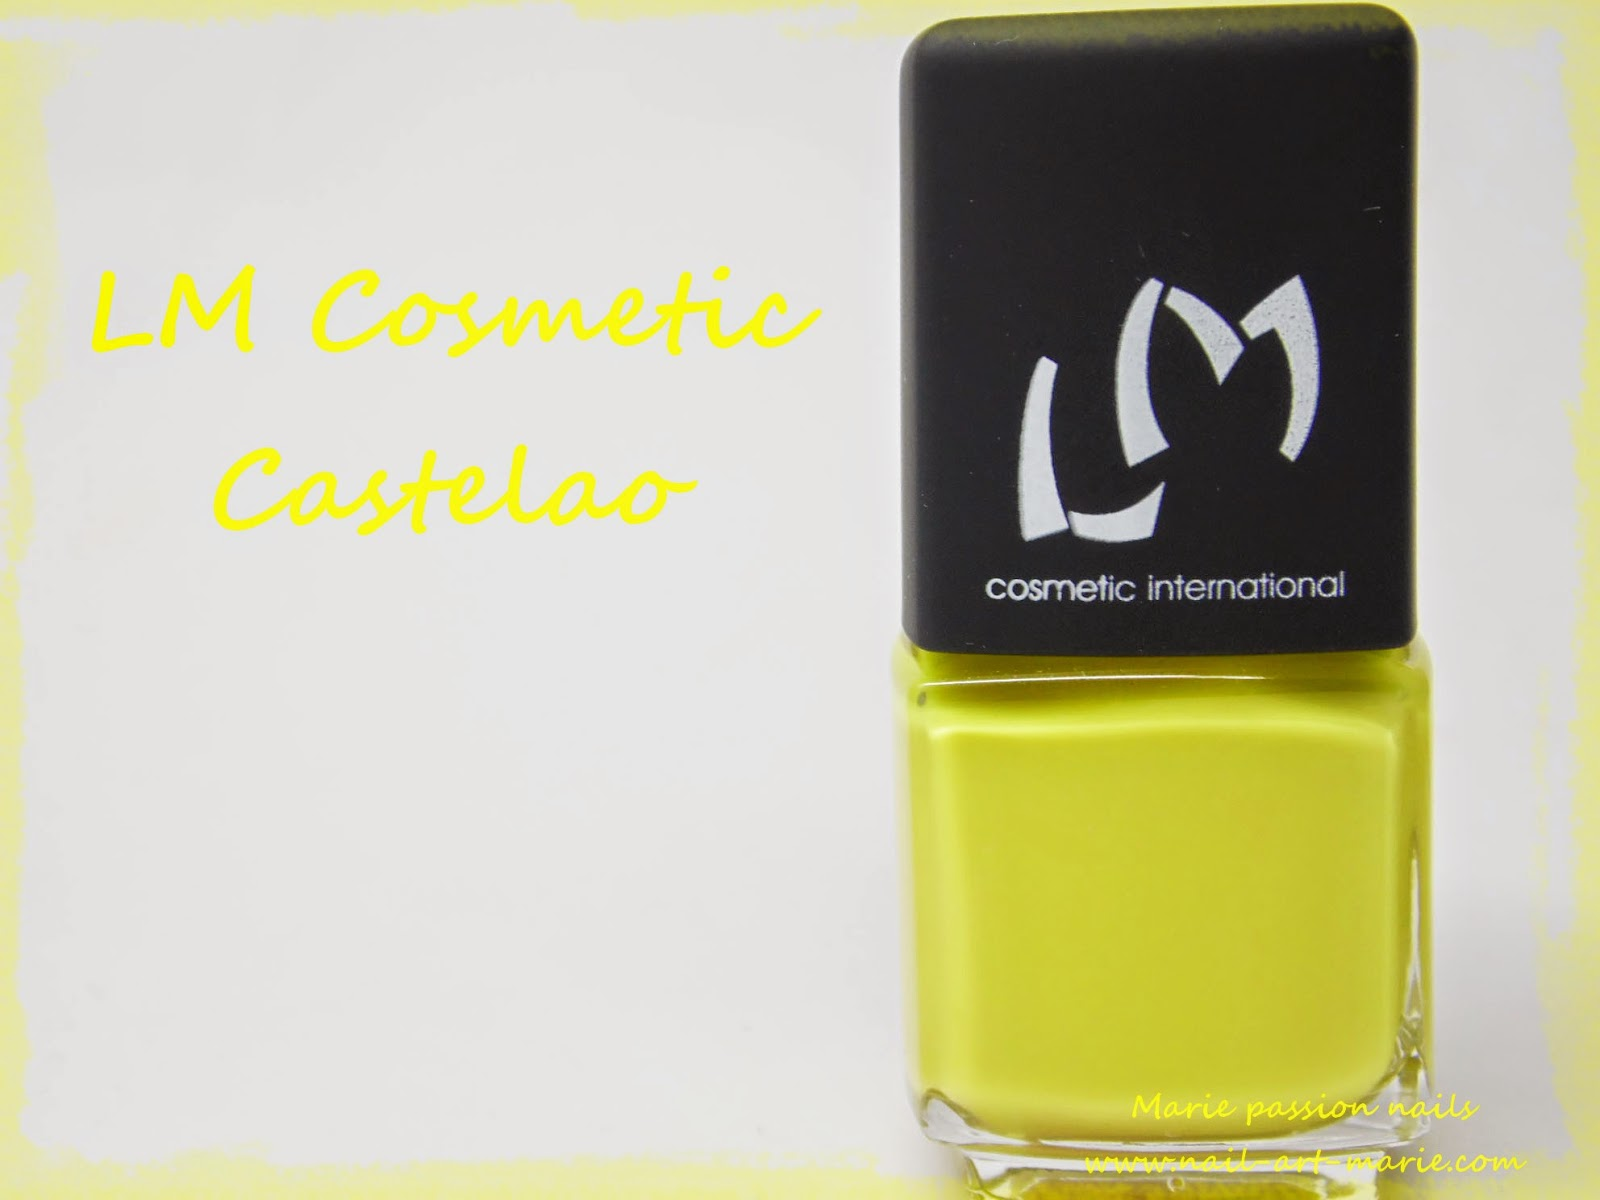 LM Cosmetic Castelao1